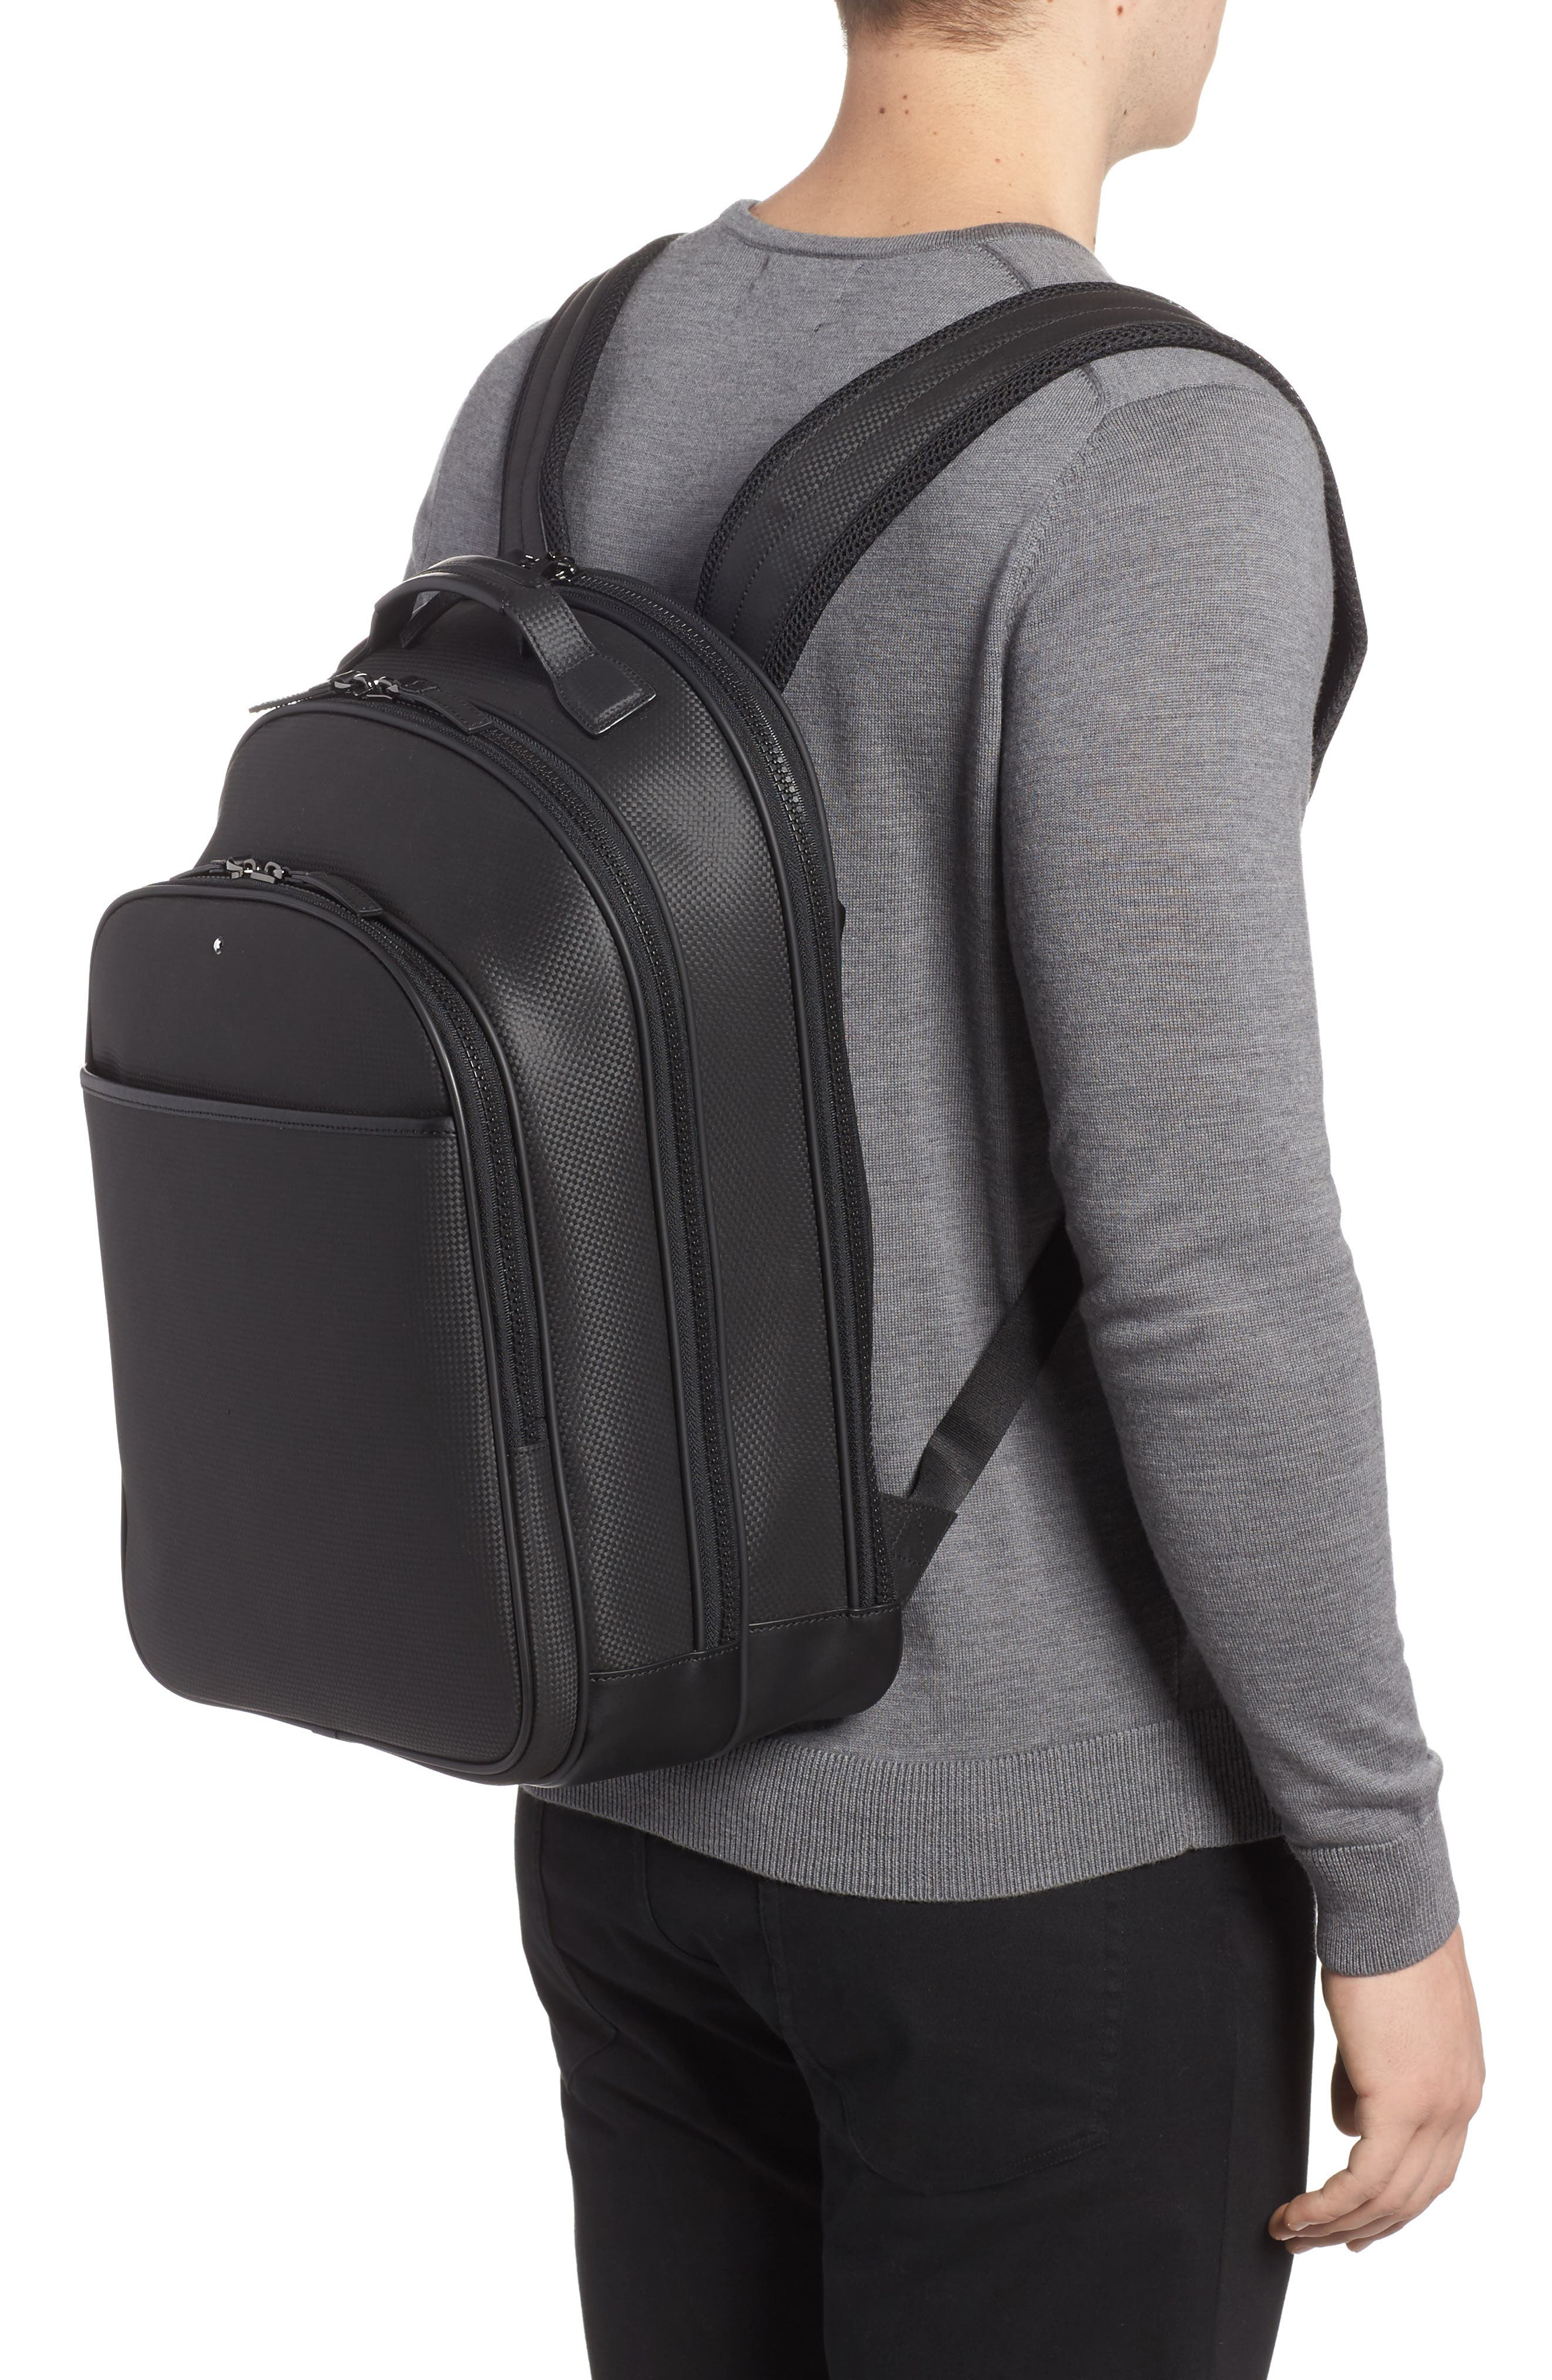 Extreme Leather Backpack,                             Alternate thumbnail 2, color,                             Black